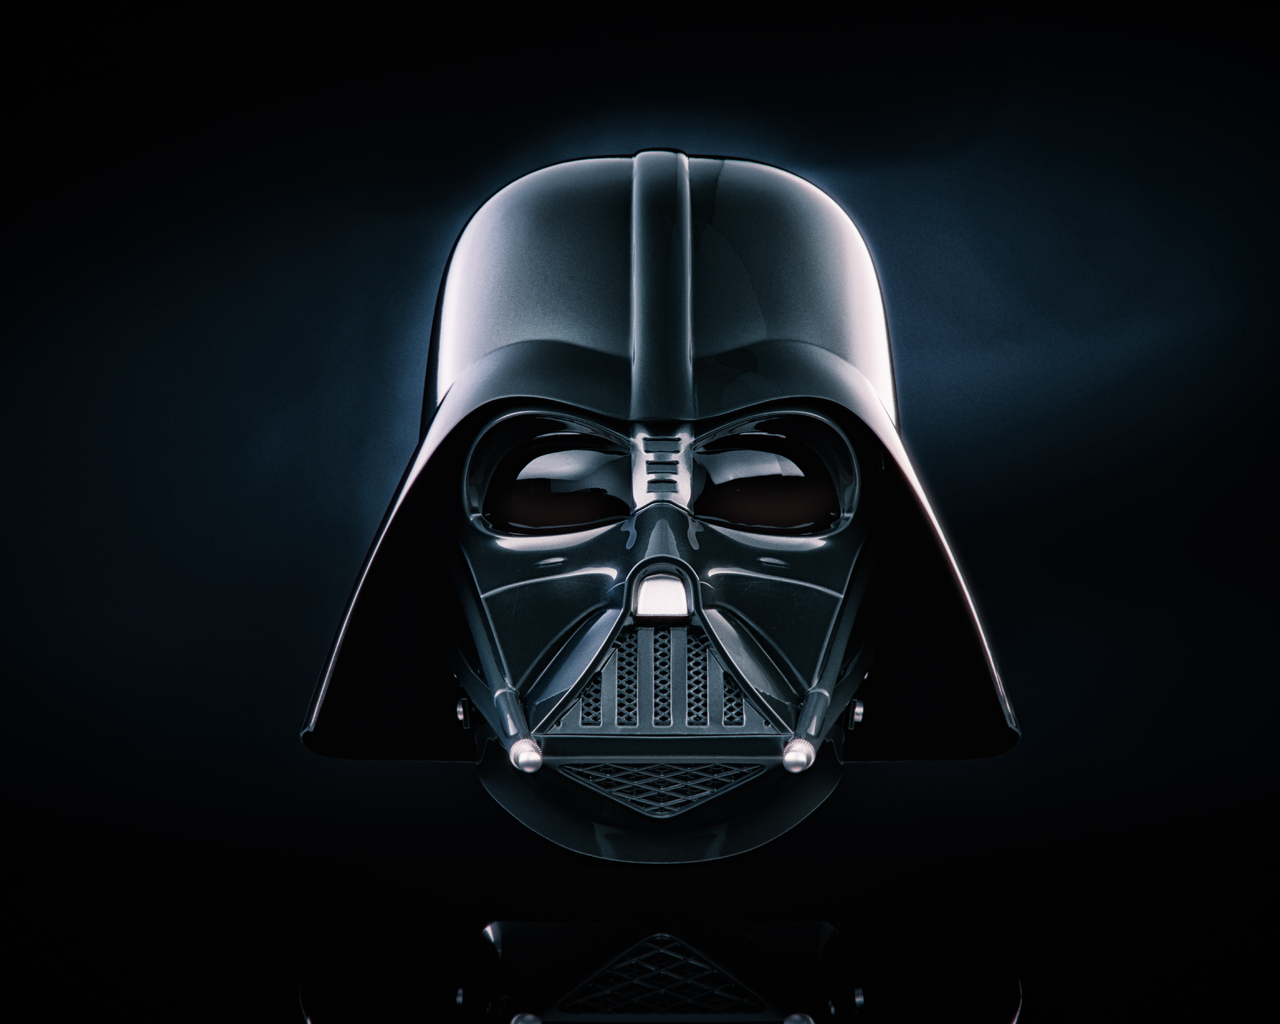 1280x1024 Darth Vader 5k 1280x1024 Resolution Hd 4k Wallpapers